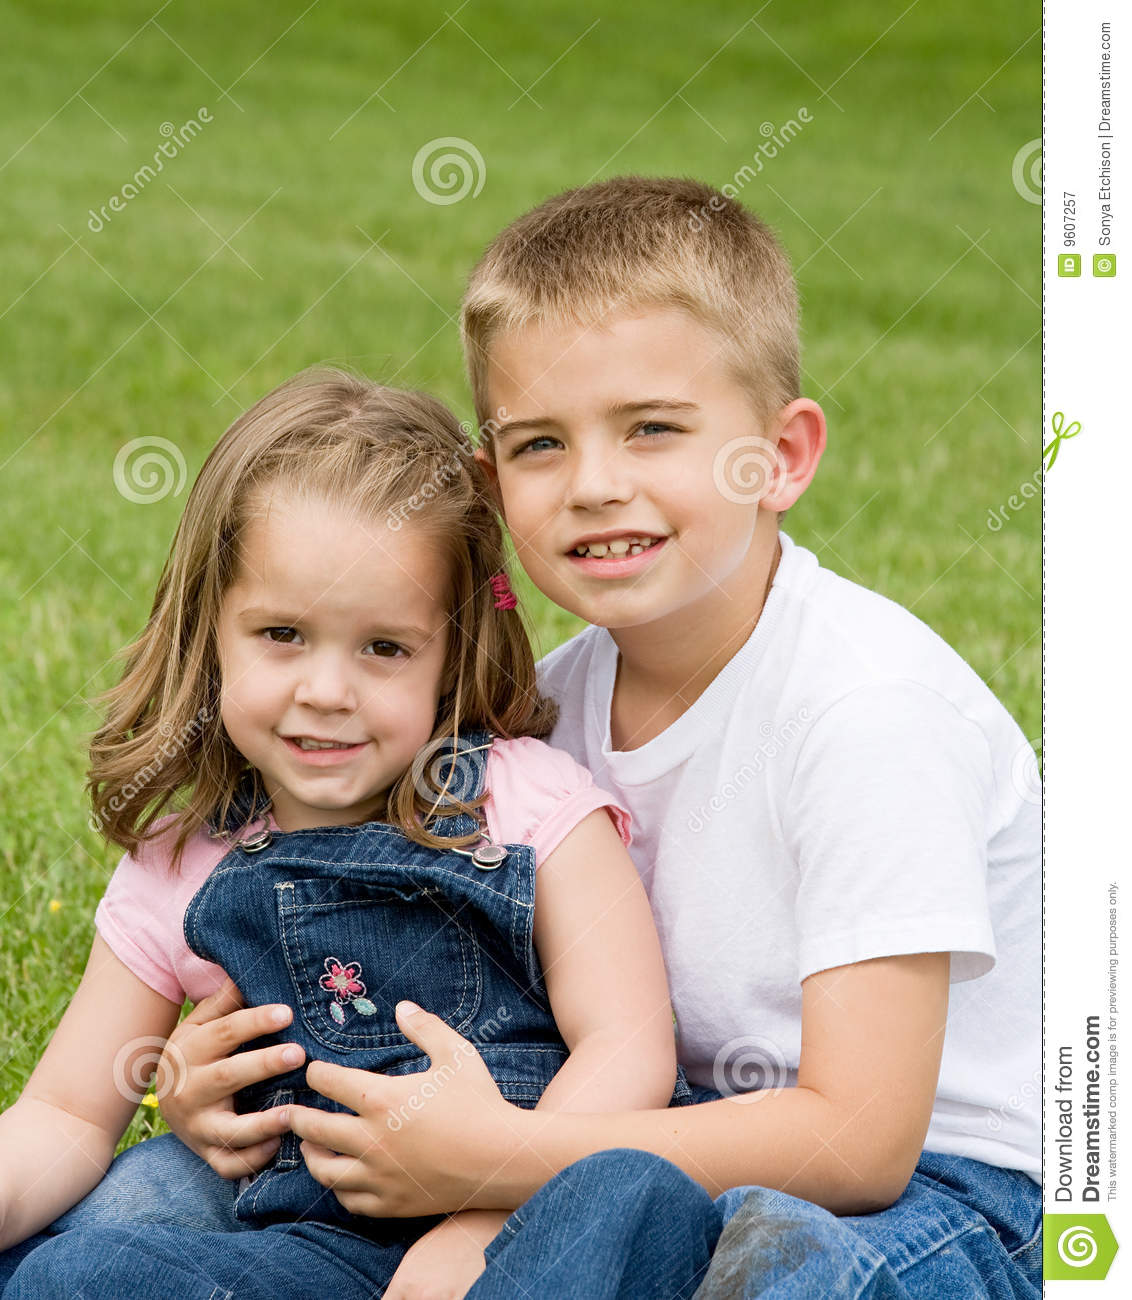 Picture For Brother Sister: Brother Sister Stock Image. Image Of Little, Outdoors